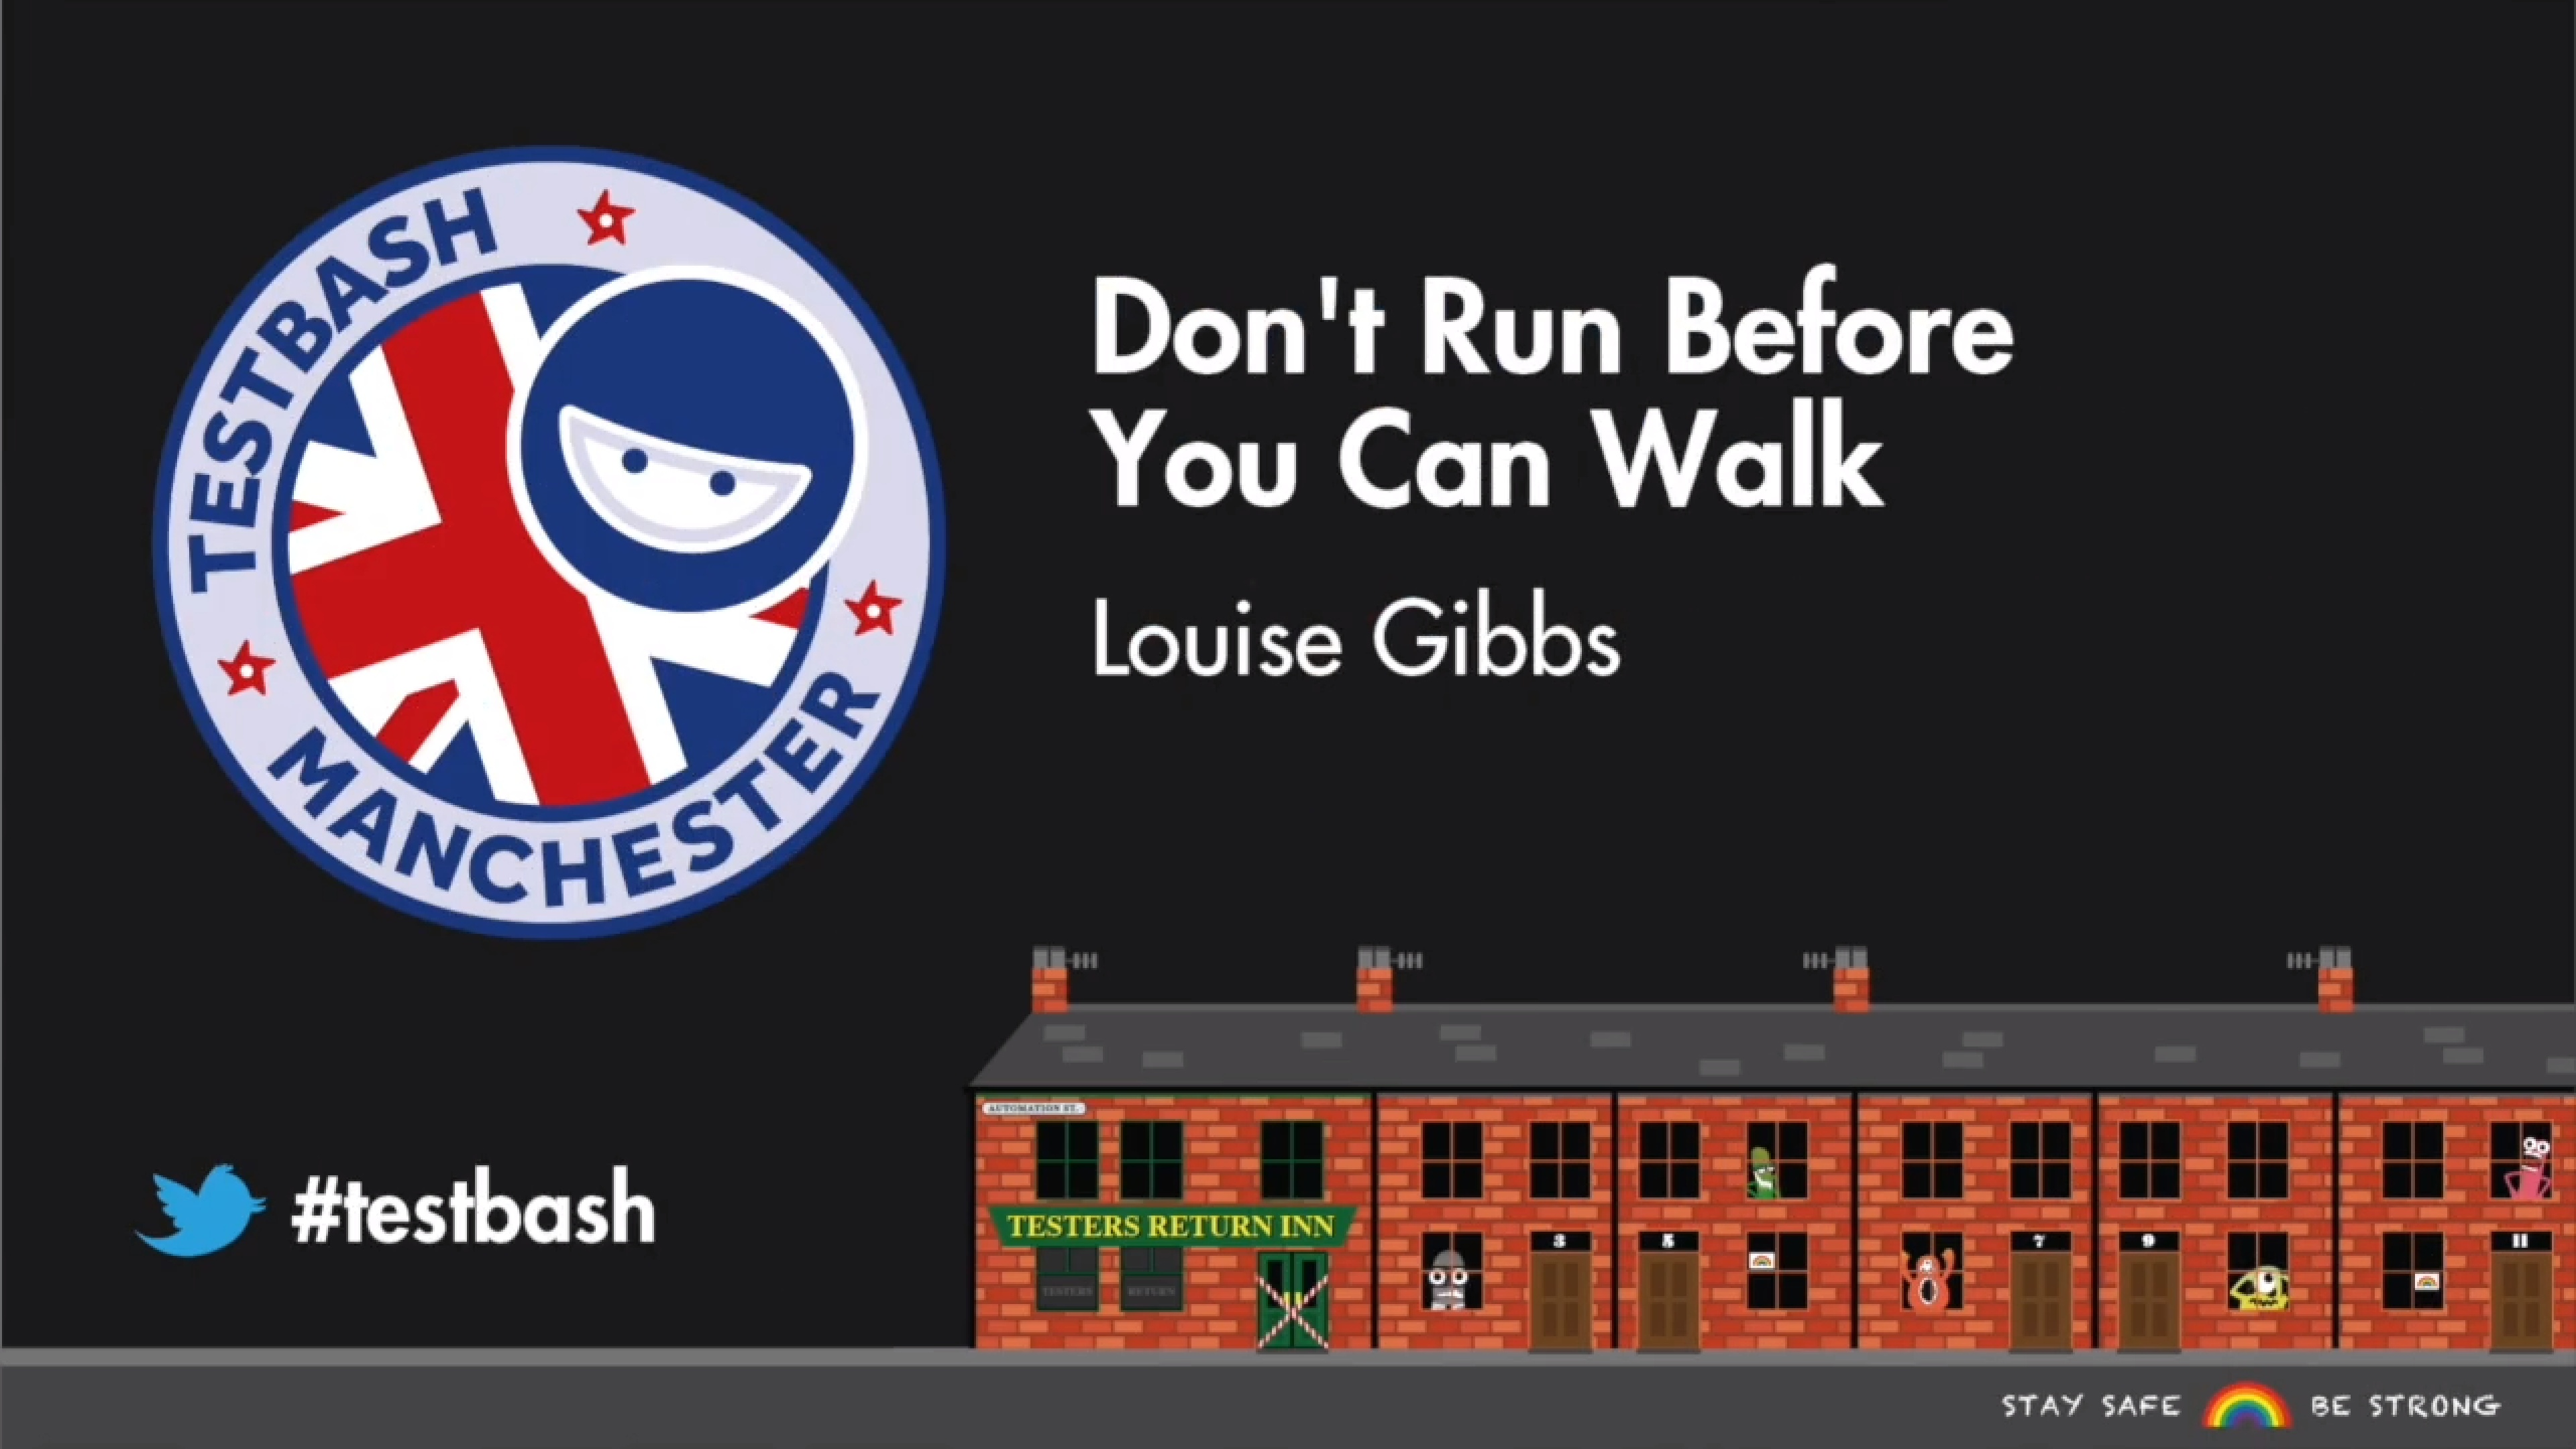 Don't Run Before You Can Walk - Louise Gibbs